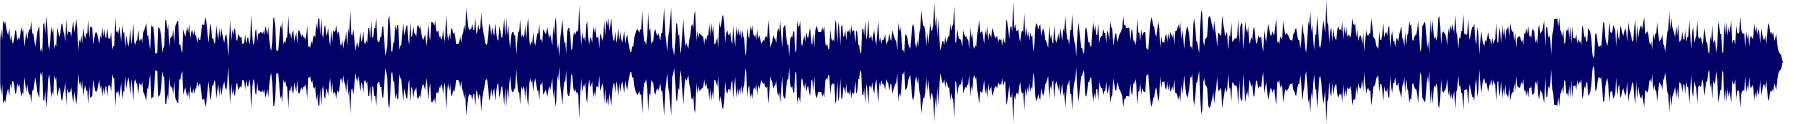 waveform of track #87831